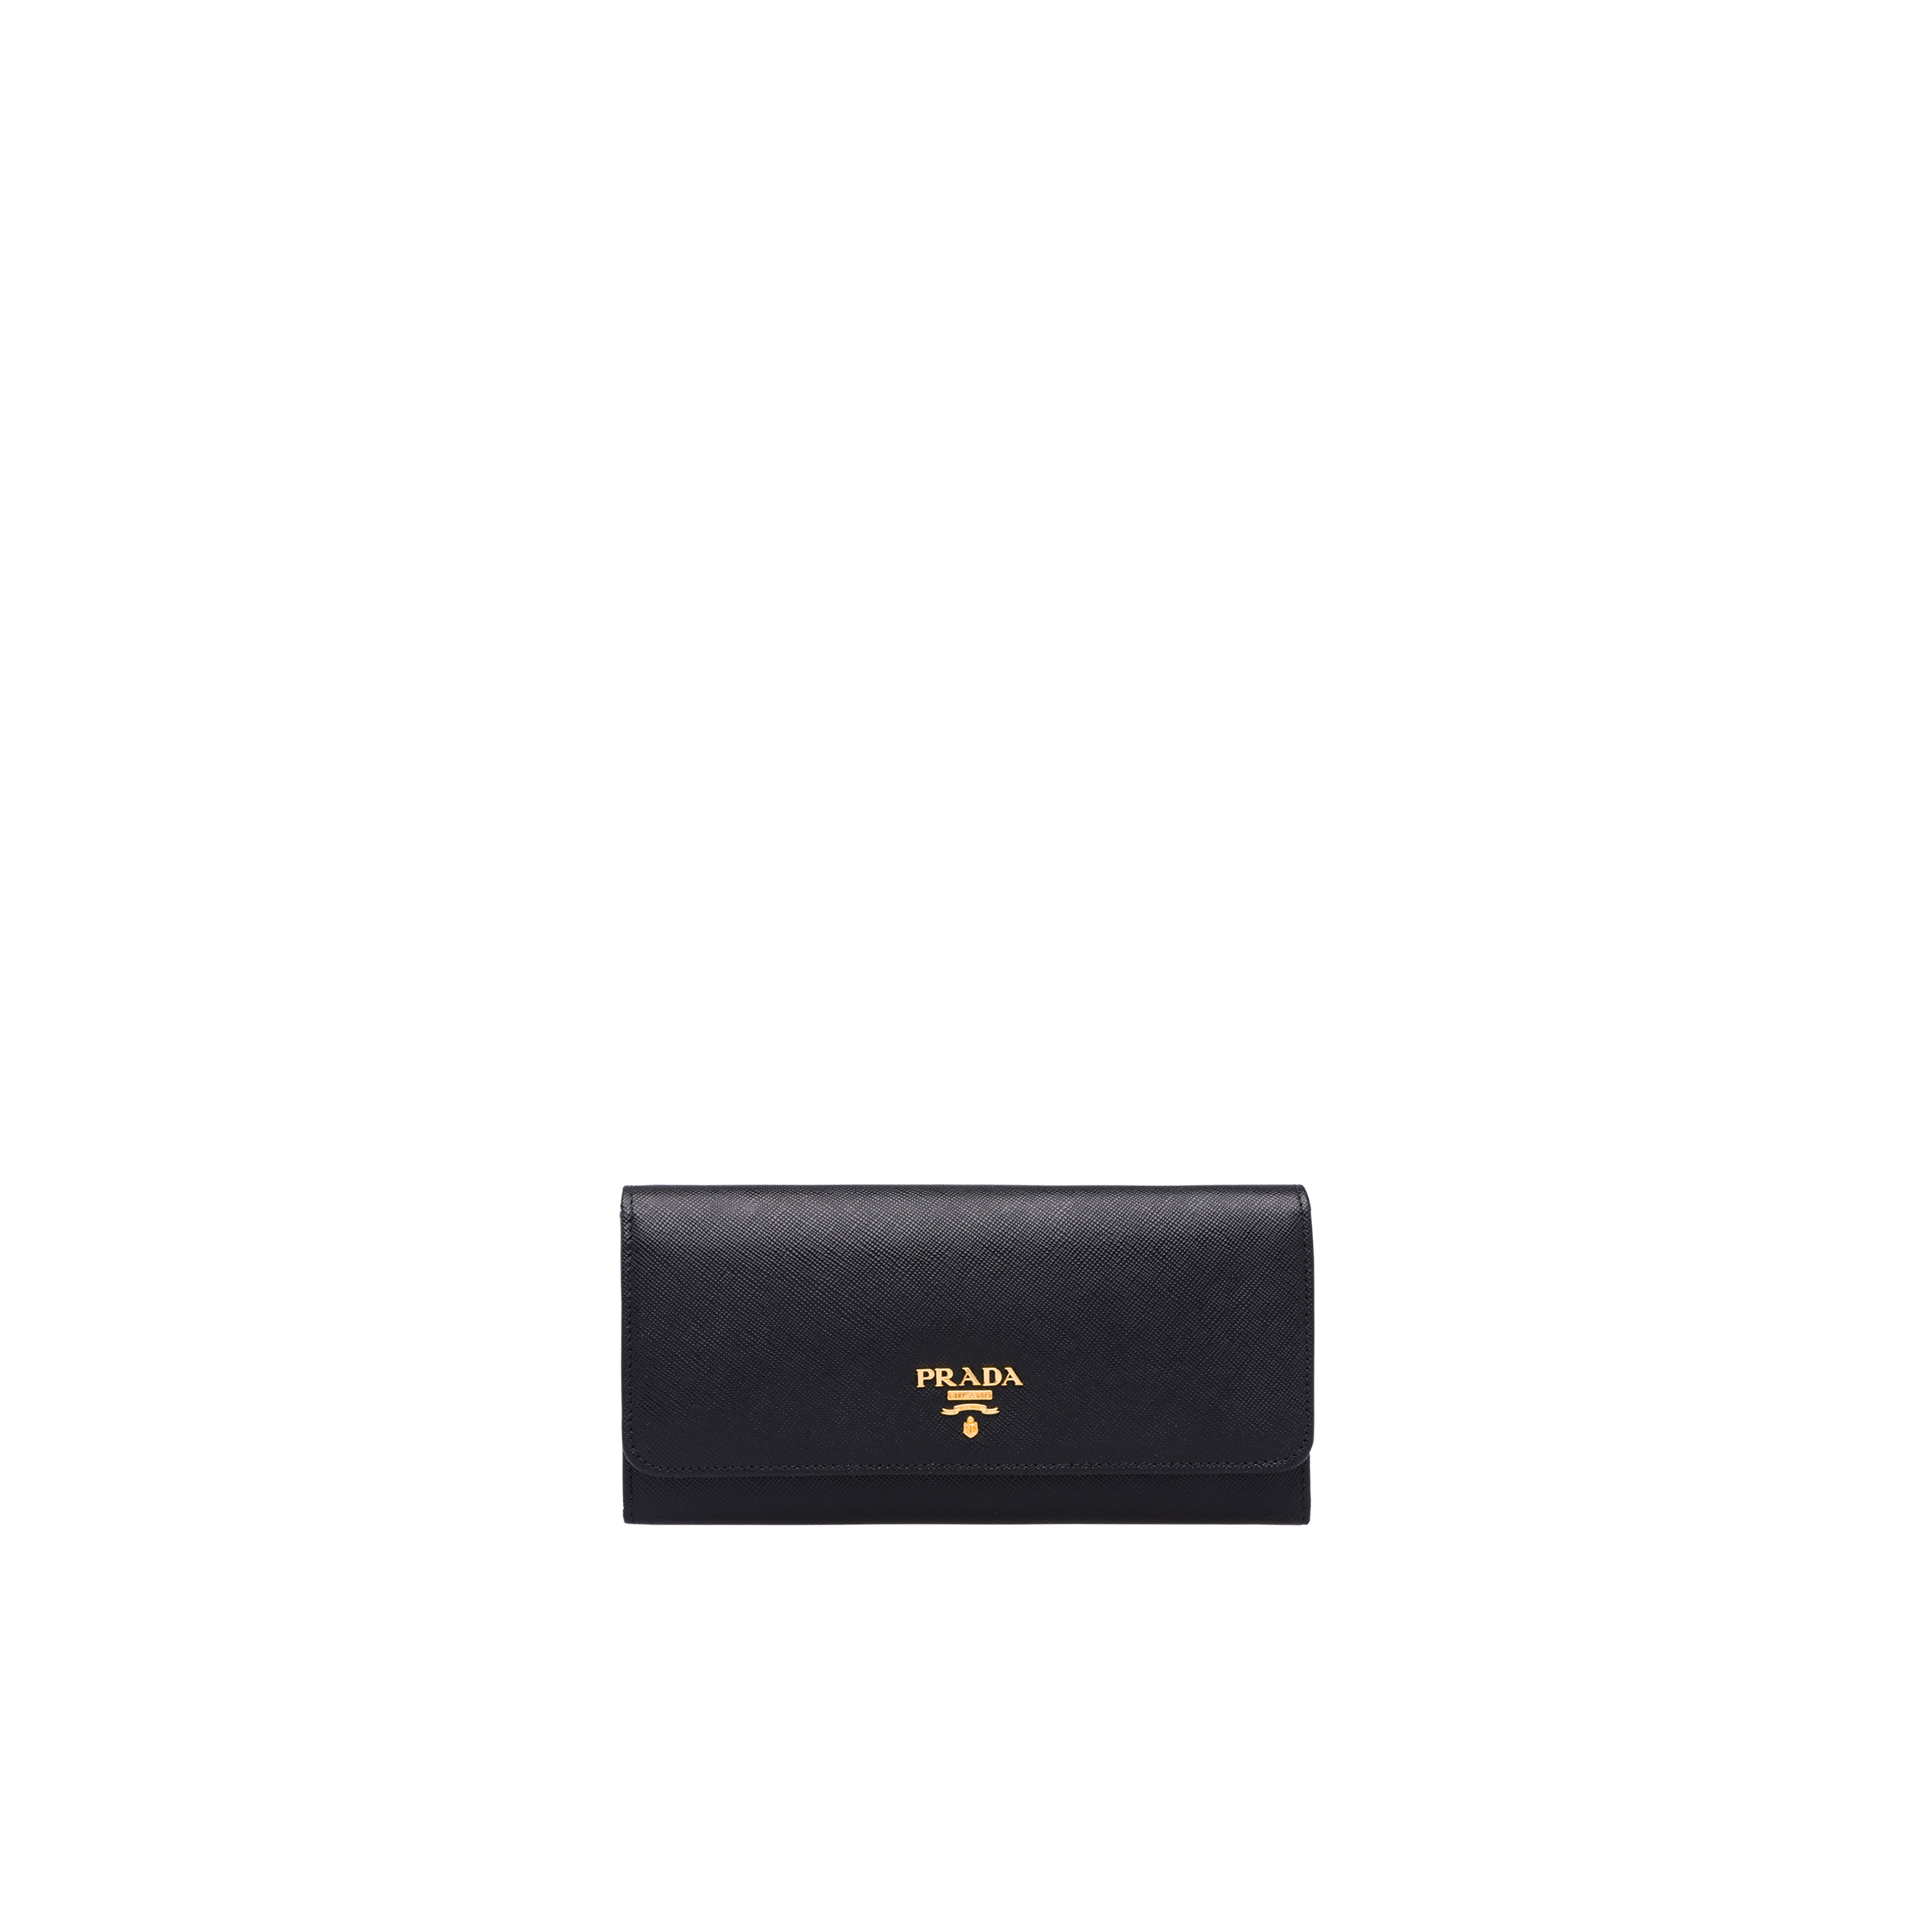 7773fcdadb8d Leather Wallet | Prada - 1MH132_QWA_F0002